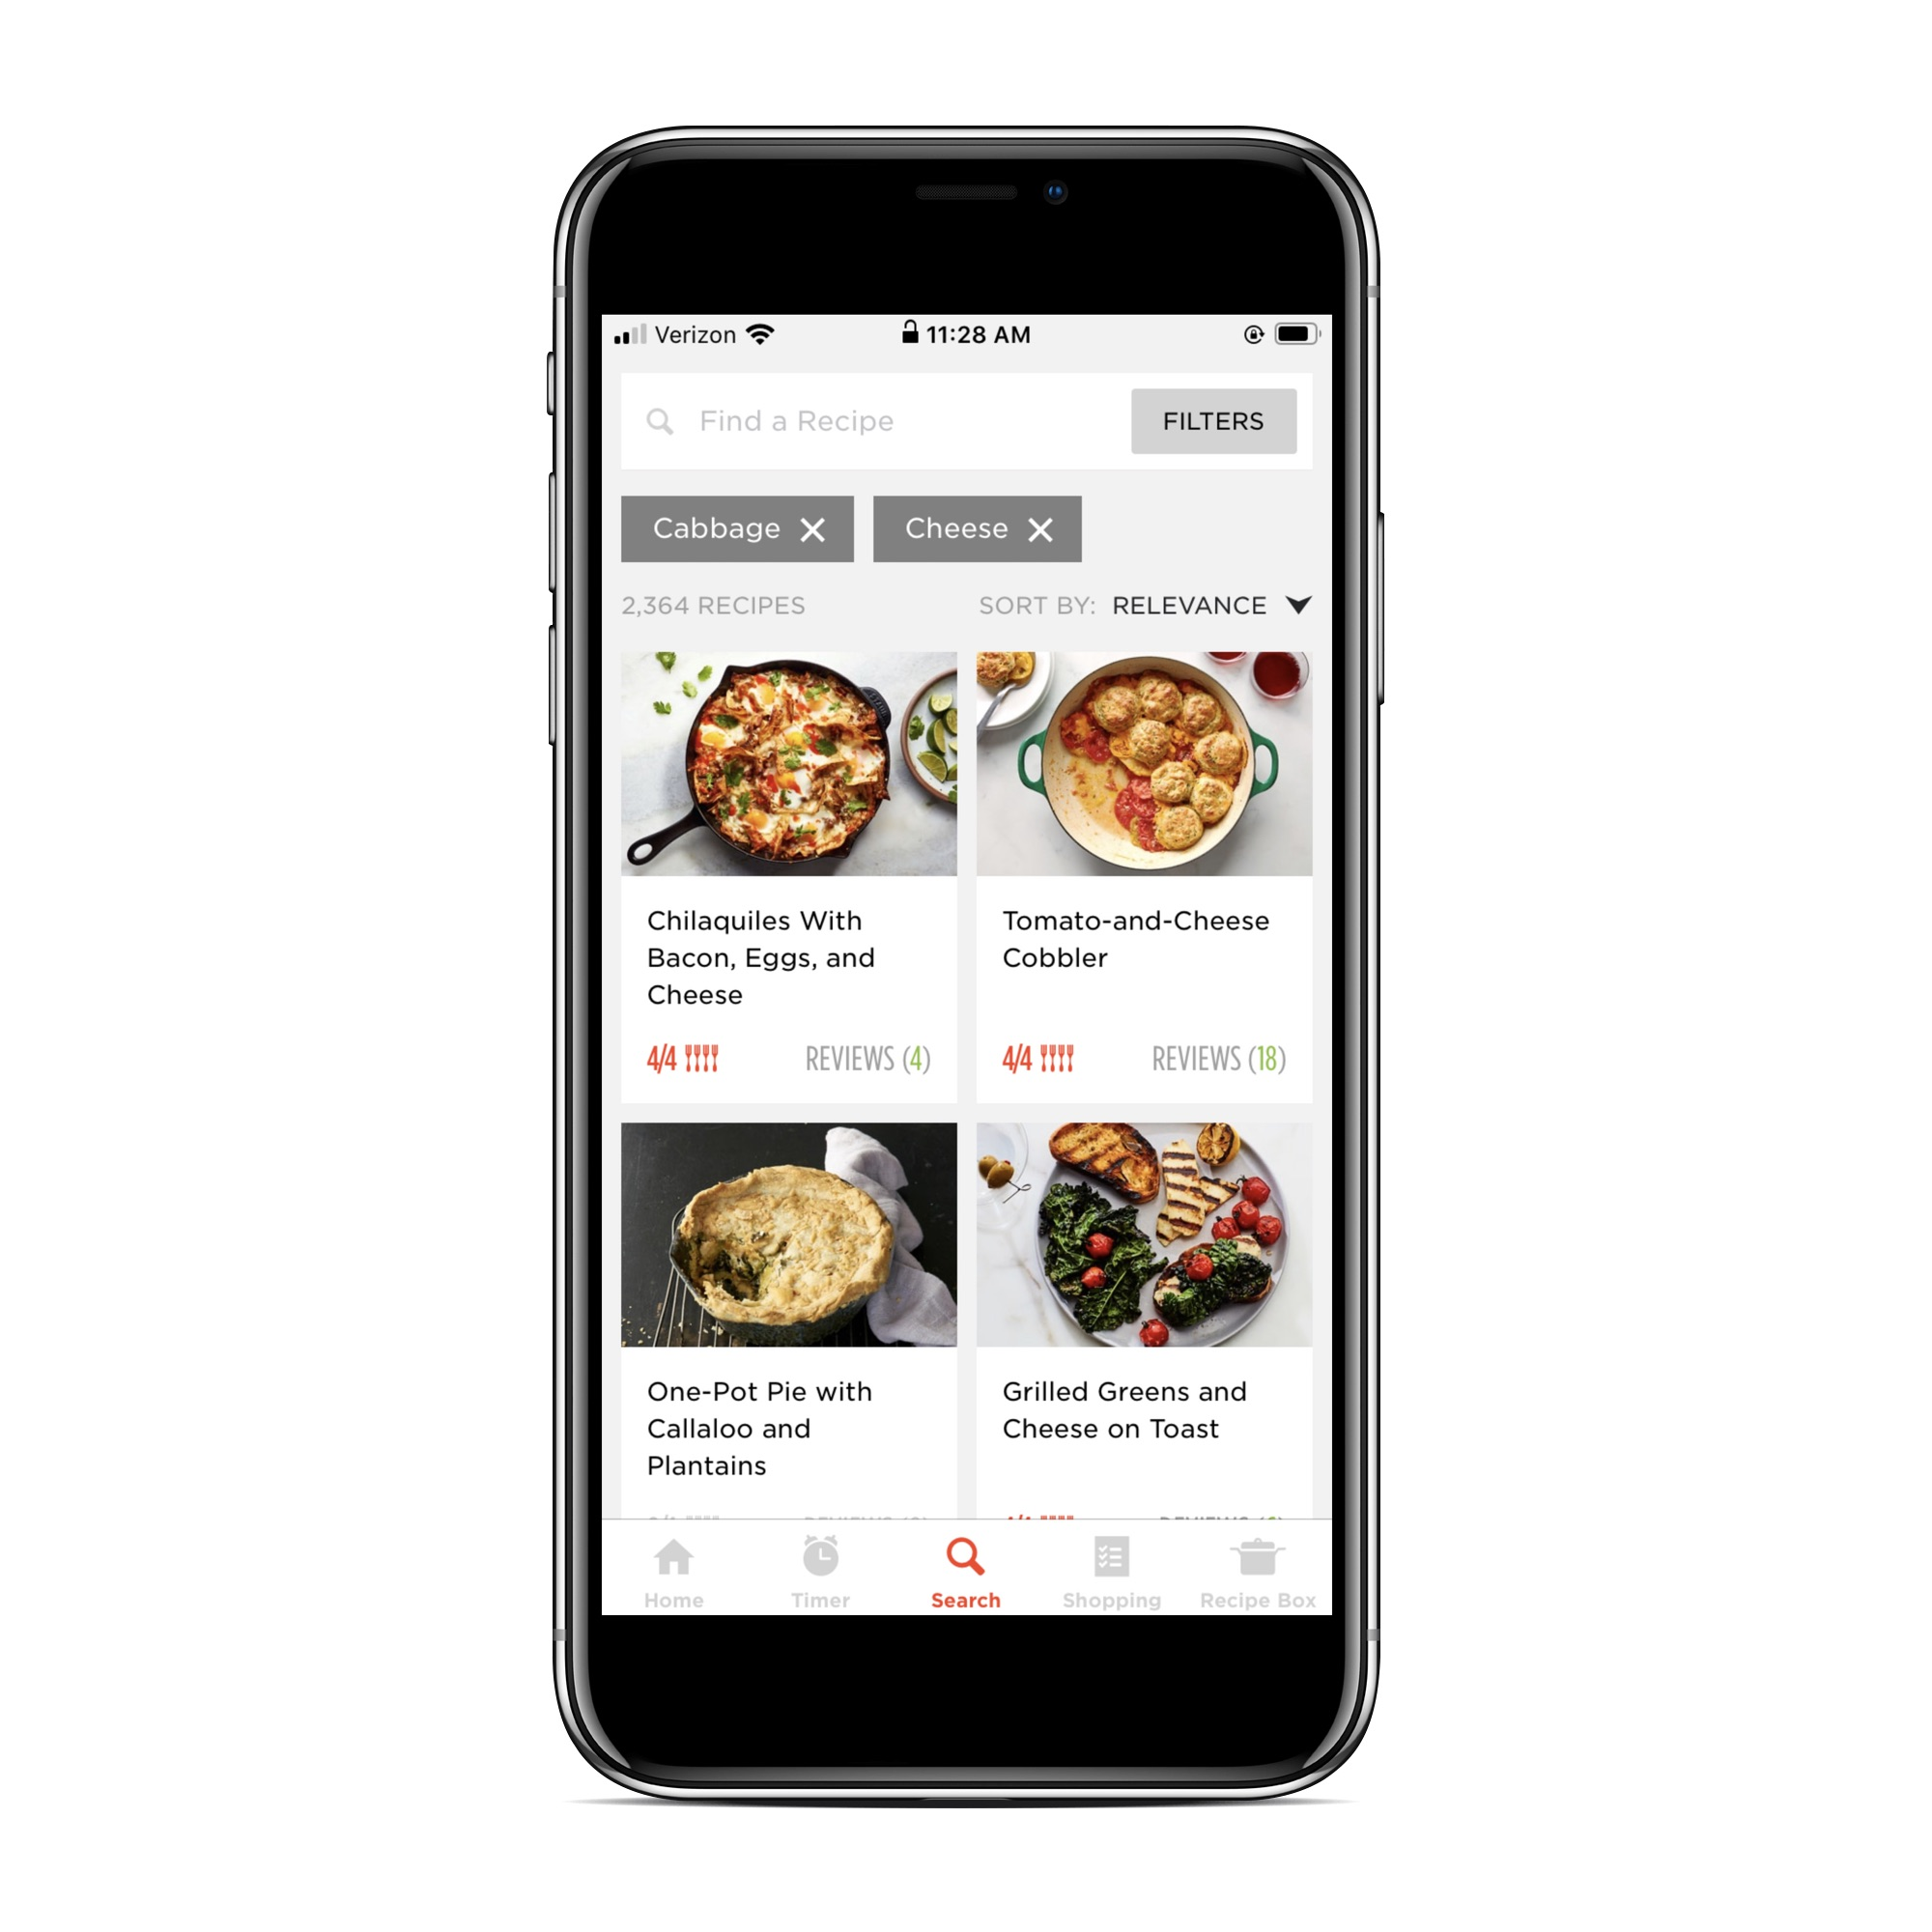 Recipe apps that let you search by ingredient: Epicurious